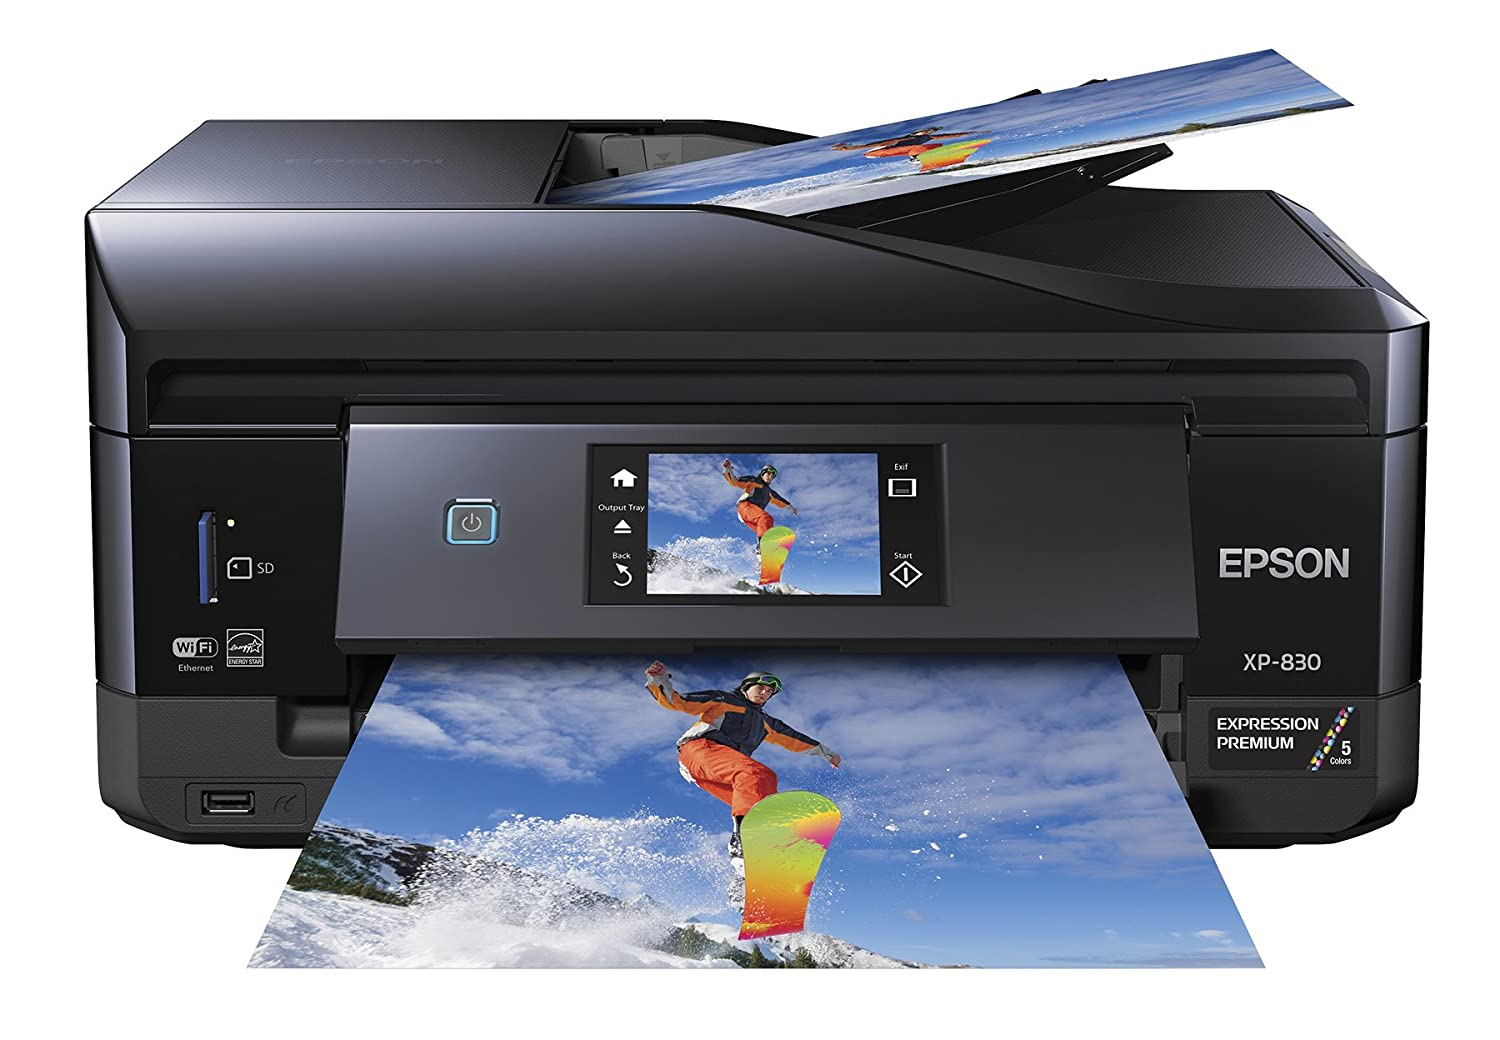 Top 9 best printers for Mac, iPad & iPhone (2020 Reviews & Buying Guide) 9